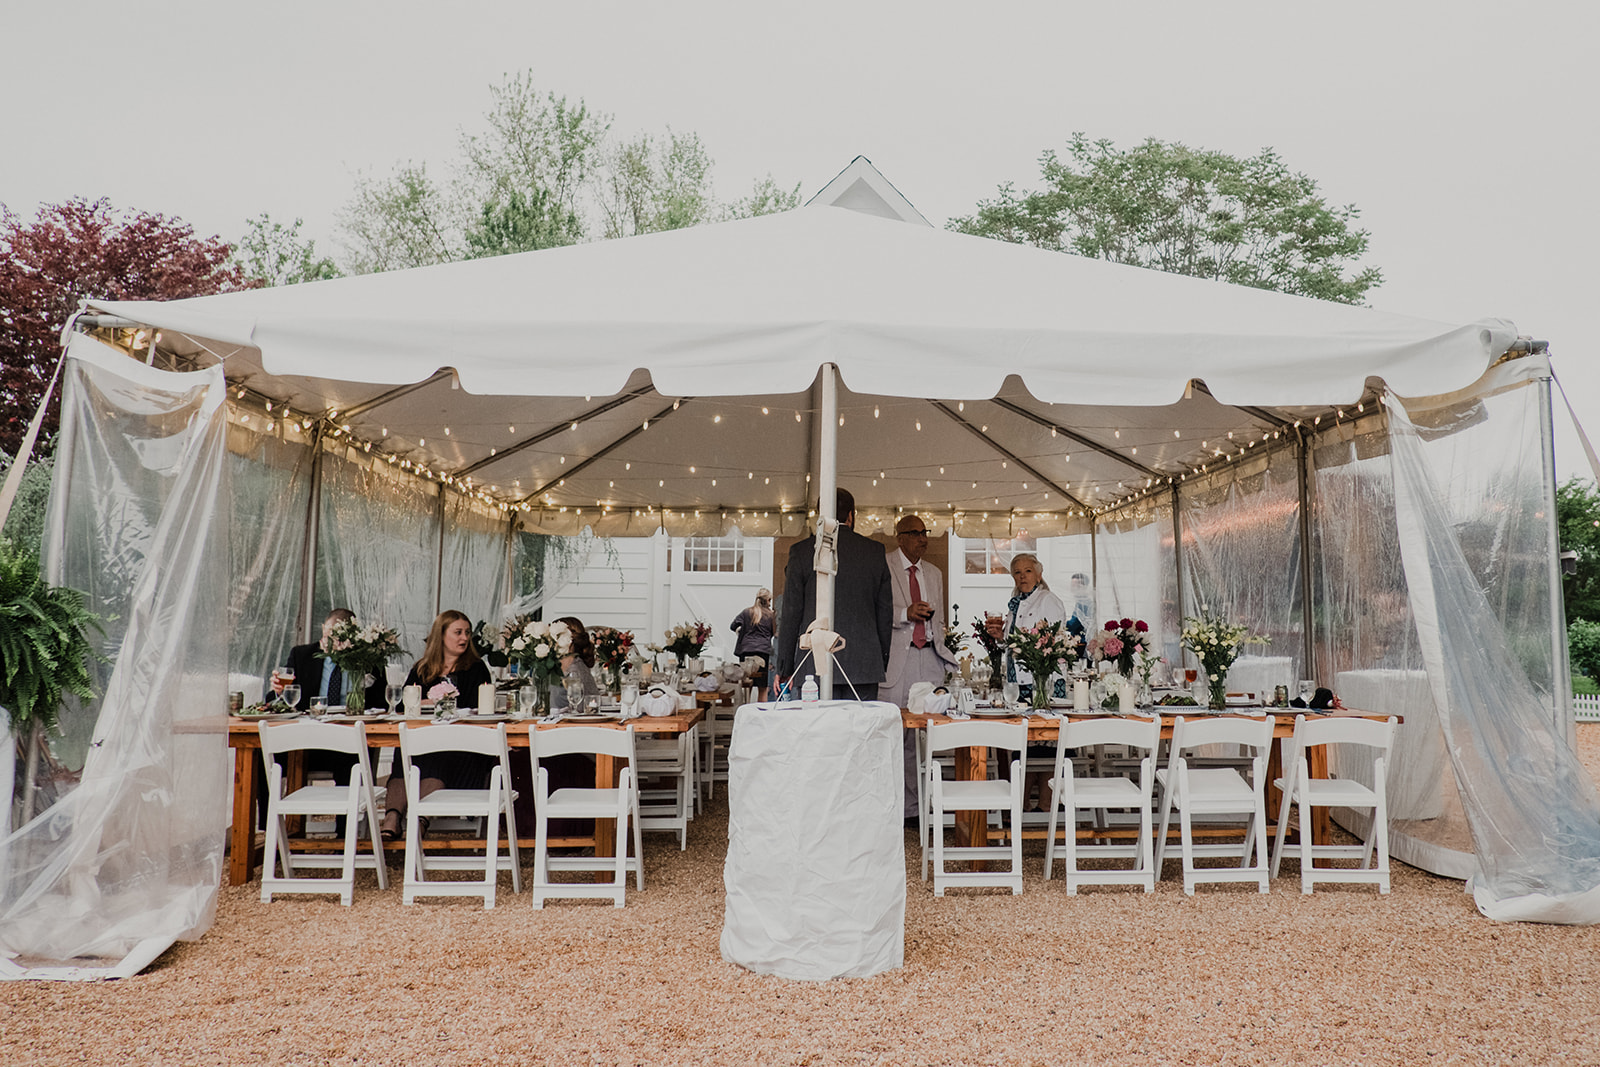 A tent is set up for a wedding reception at Blue Hill Farm in Waterford, VA.